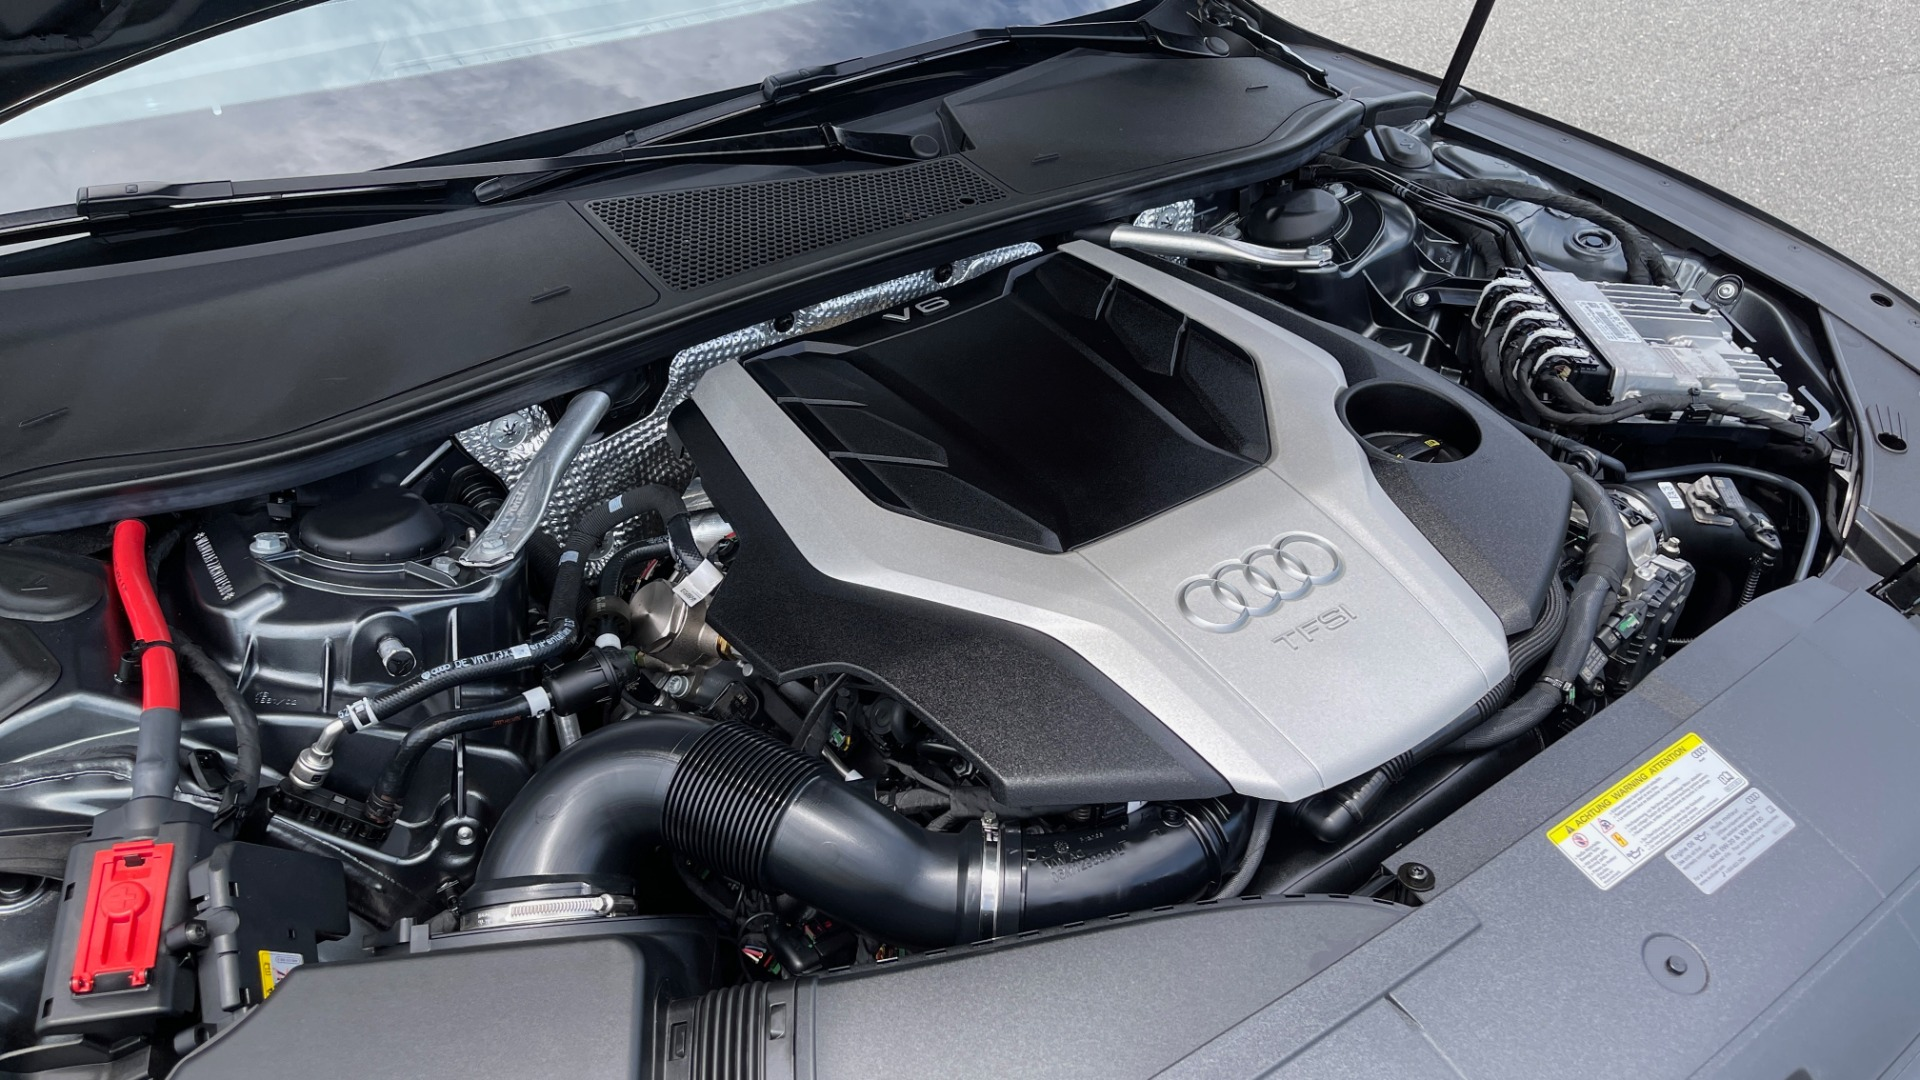 Used 2019 Audi A7 PRESTIGE 55 TFSI 3.0T / NAV / B&O SND / SUNROOF / S-LINE / 21IN WHLS / REAR for sale $66,995 at Formula Imports in Charlotte NC 28227 9